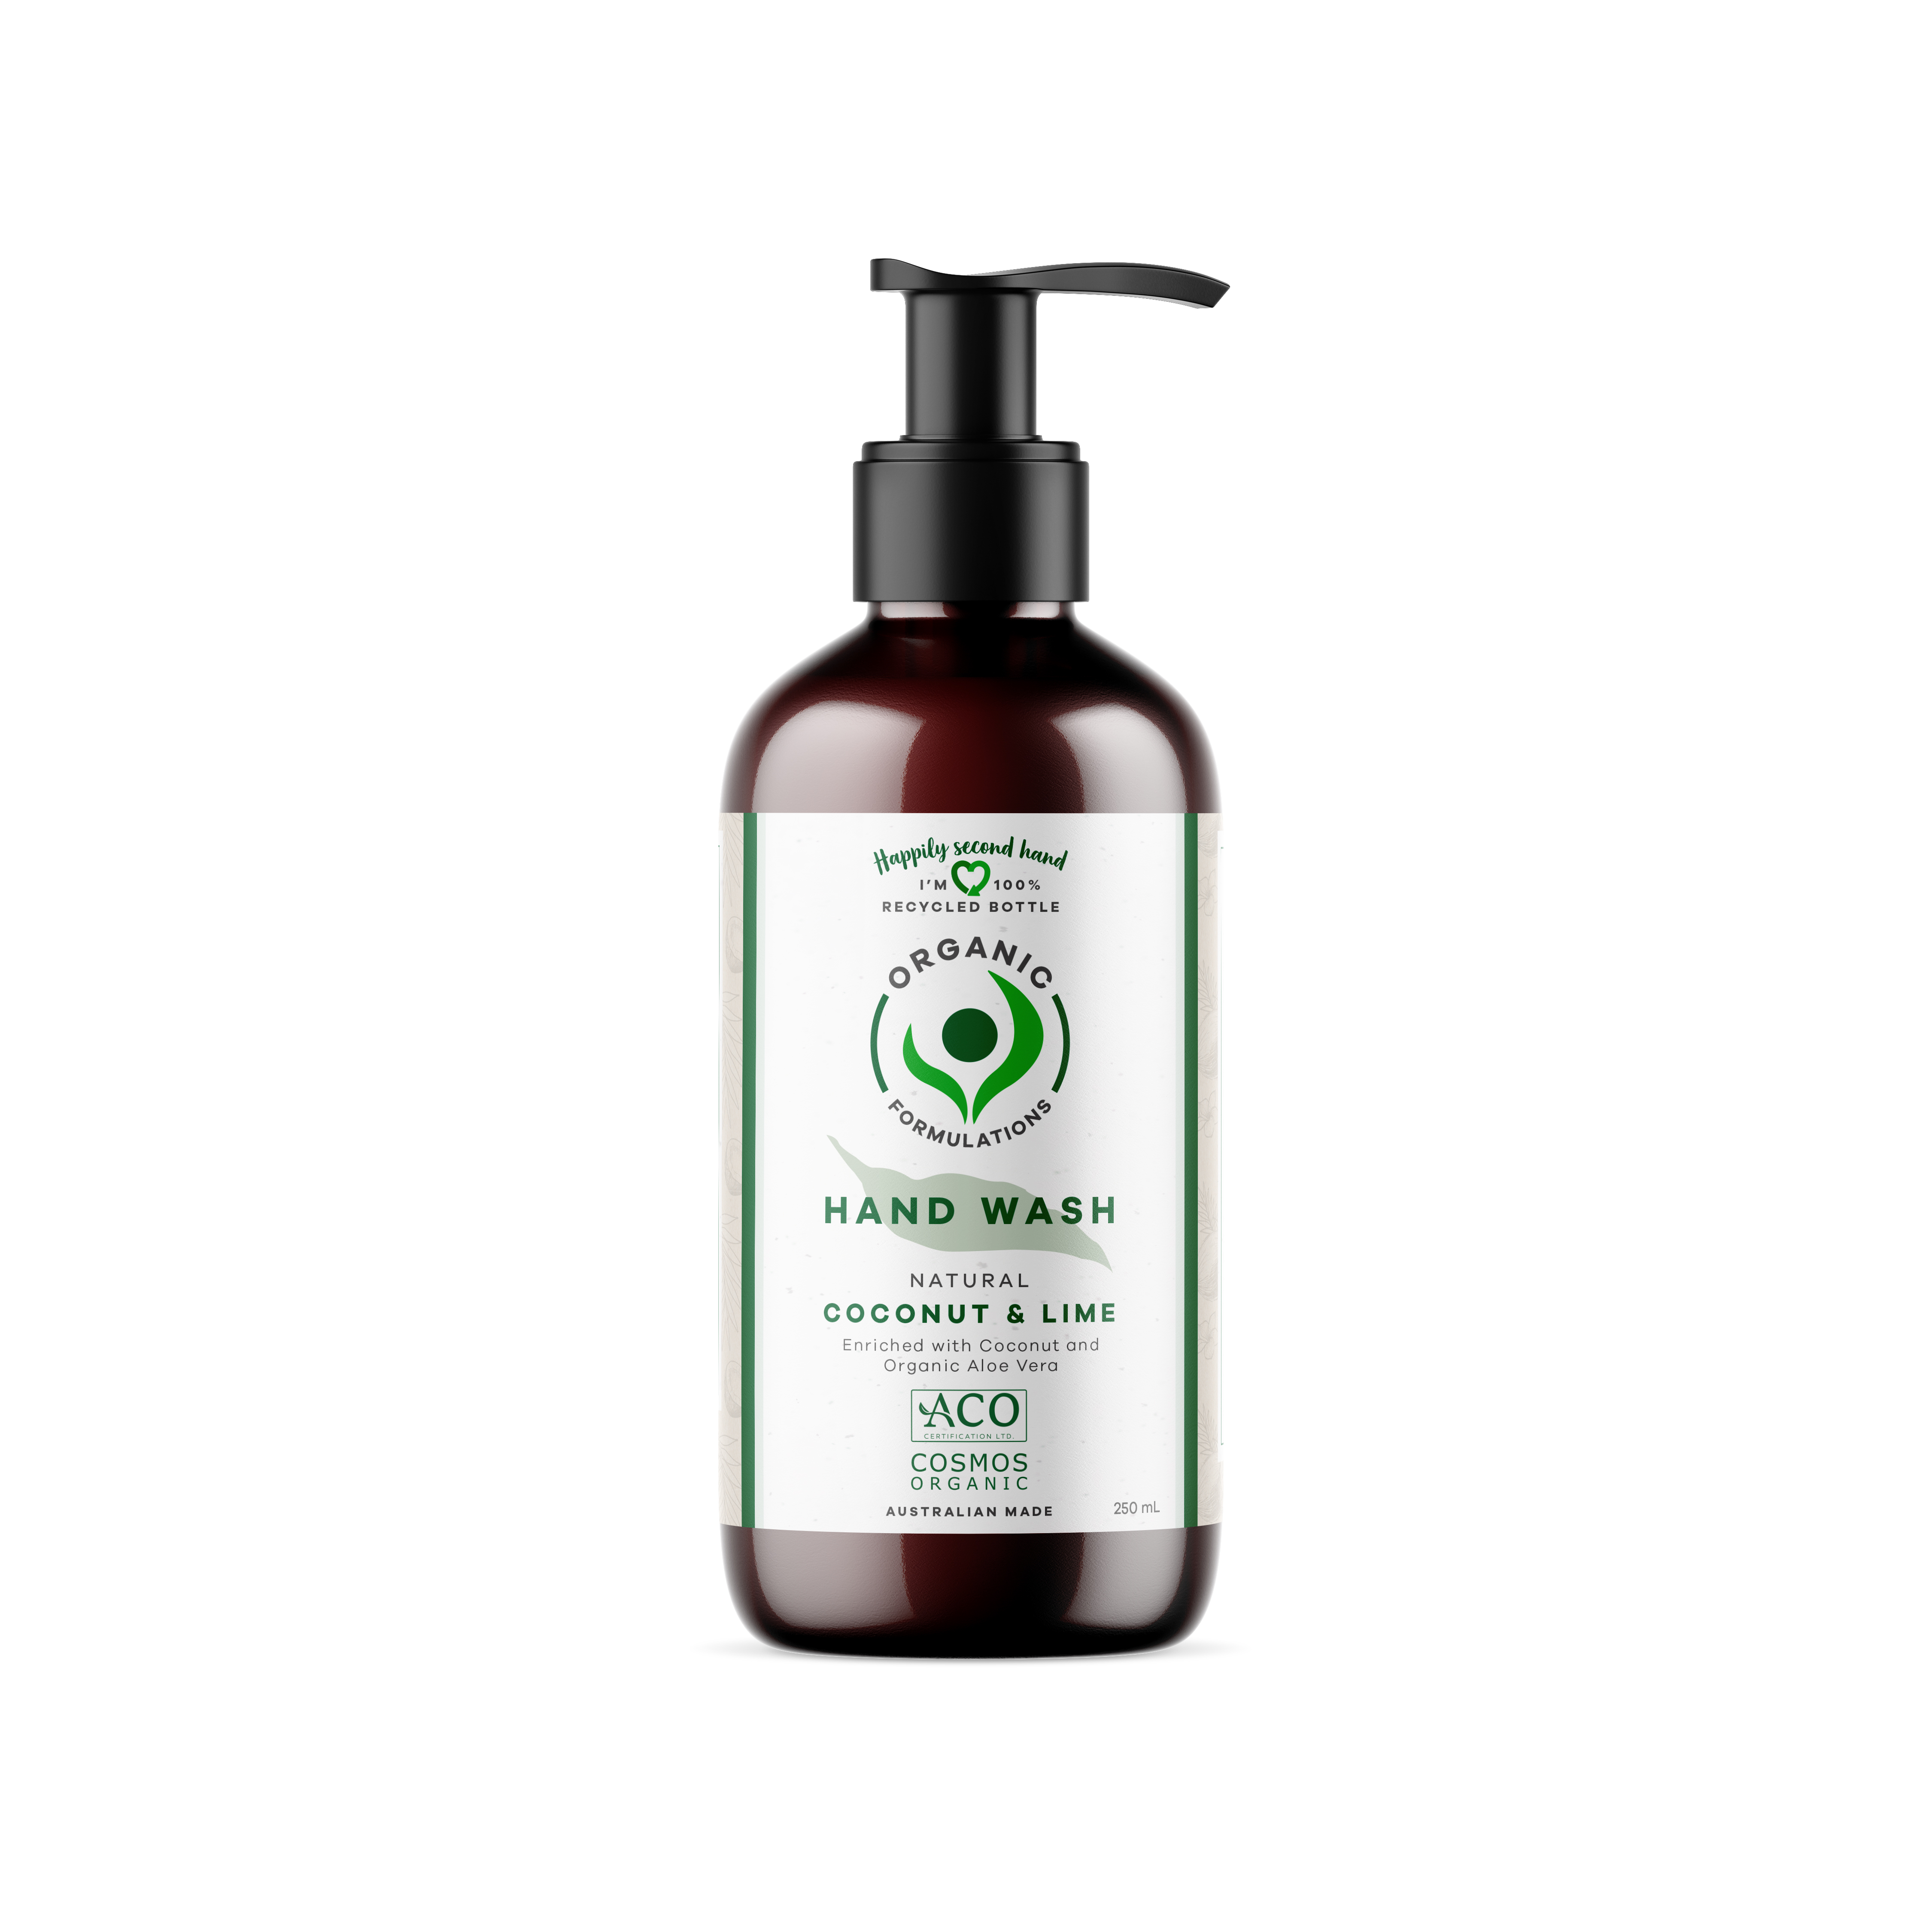 Organic Formulations - Coconut & Lime Hand Wash